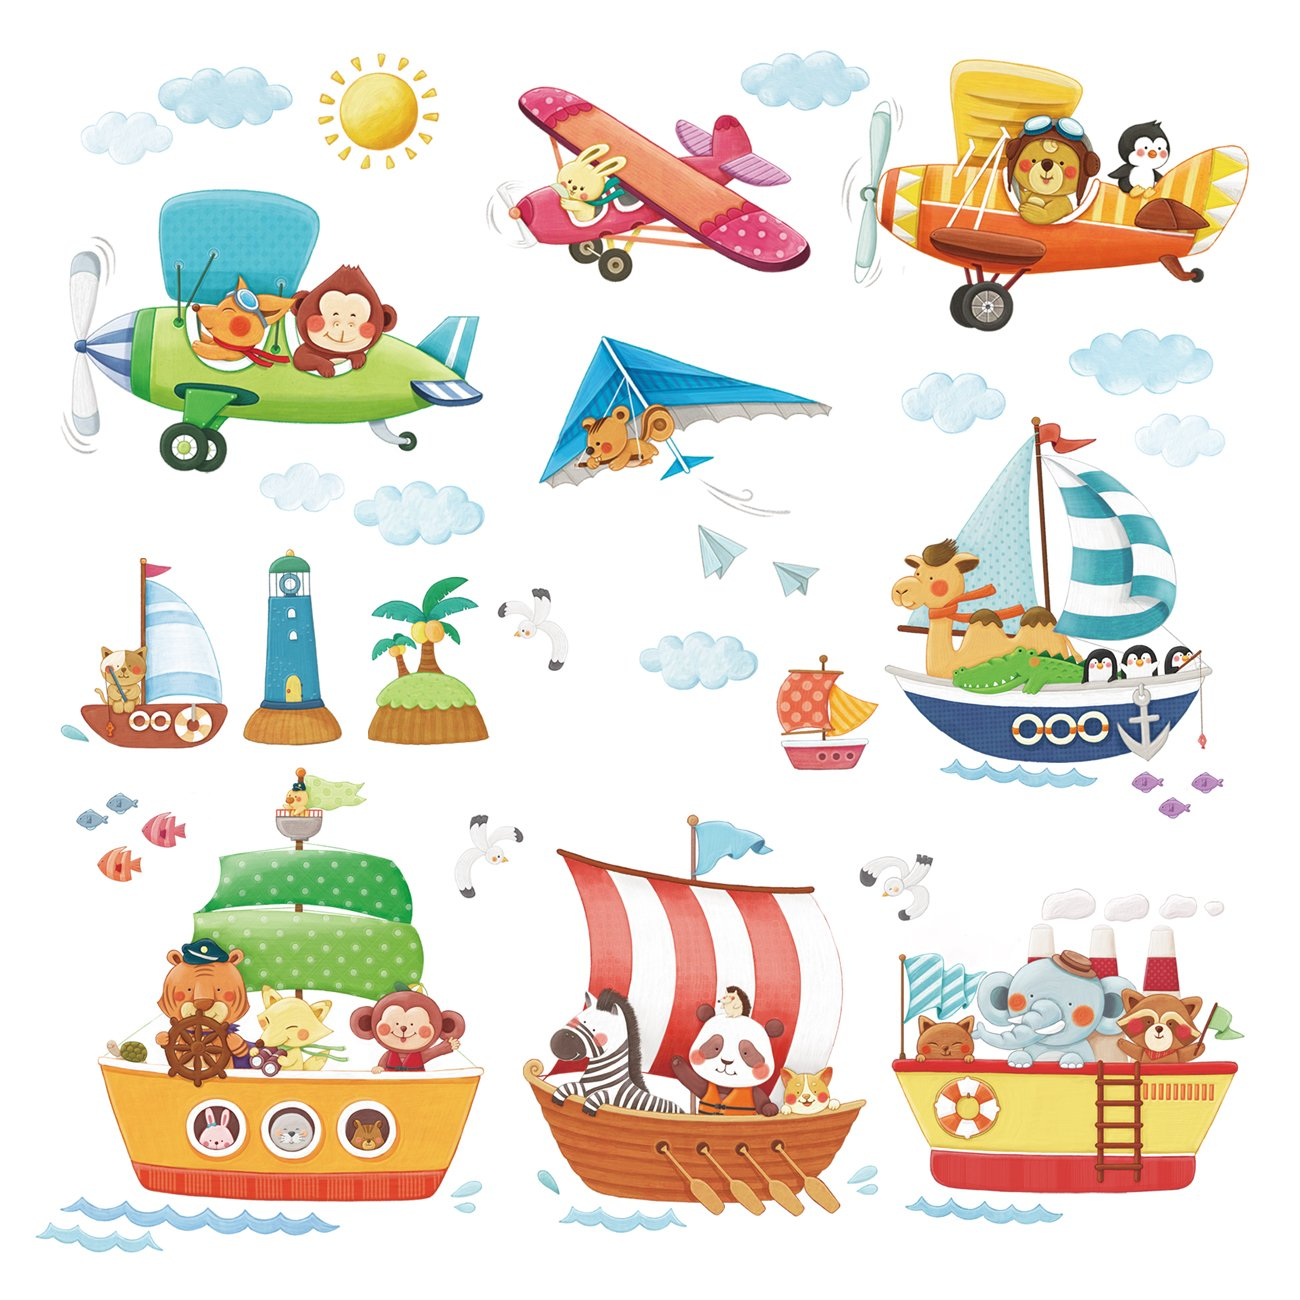 Amazon com decowall dat 1506 animal ships and 3 biplanes kids wall decals wall stickers peel and stick removable wall stickers for kids nursery bedroom